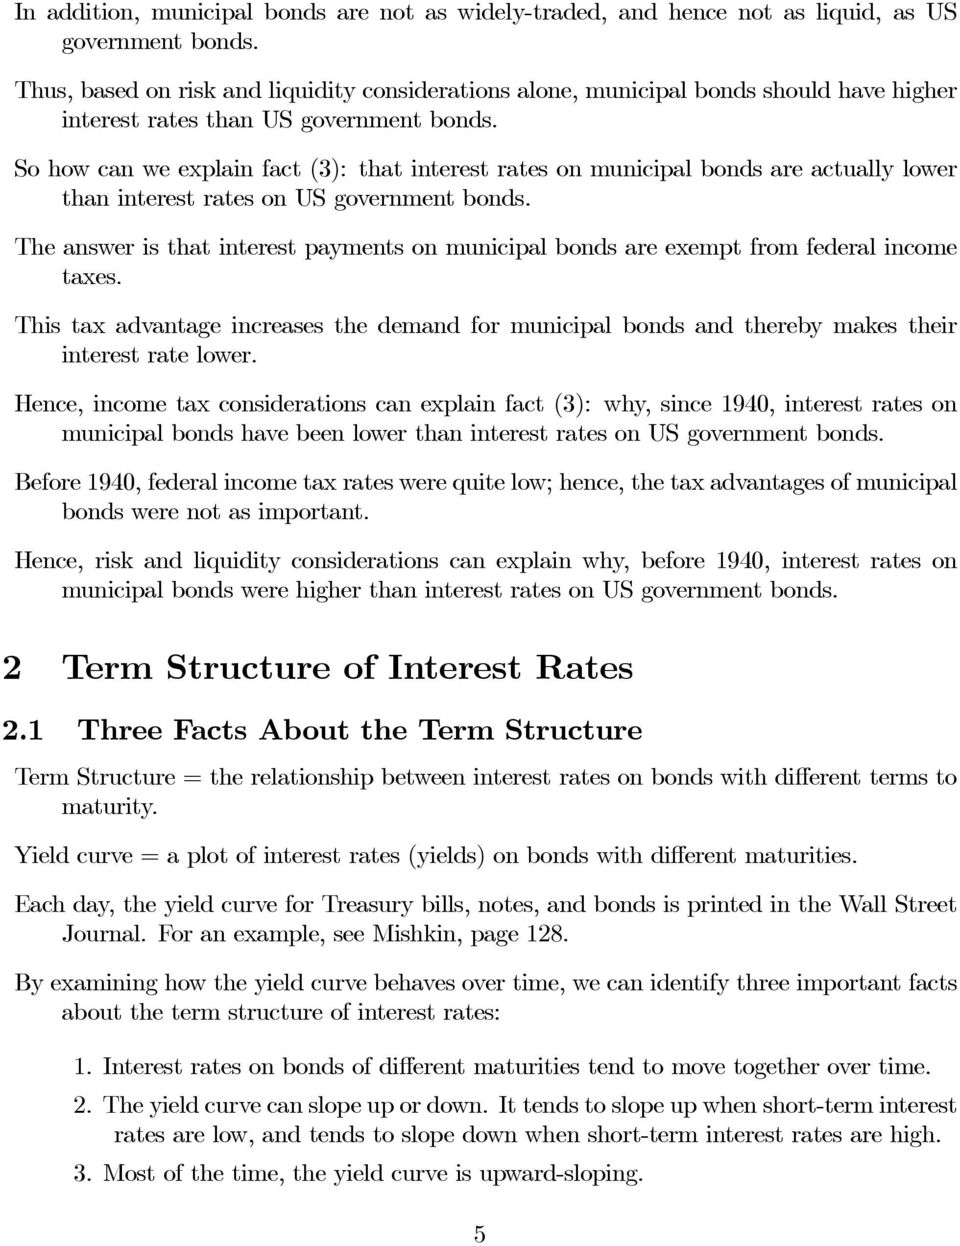 So how can we explain fact (3): that interest rates on municipal bonds are actually lower than interest rates on US government bonds.